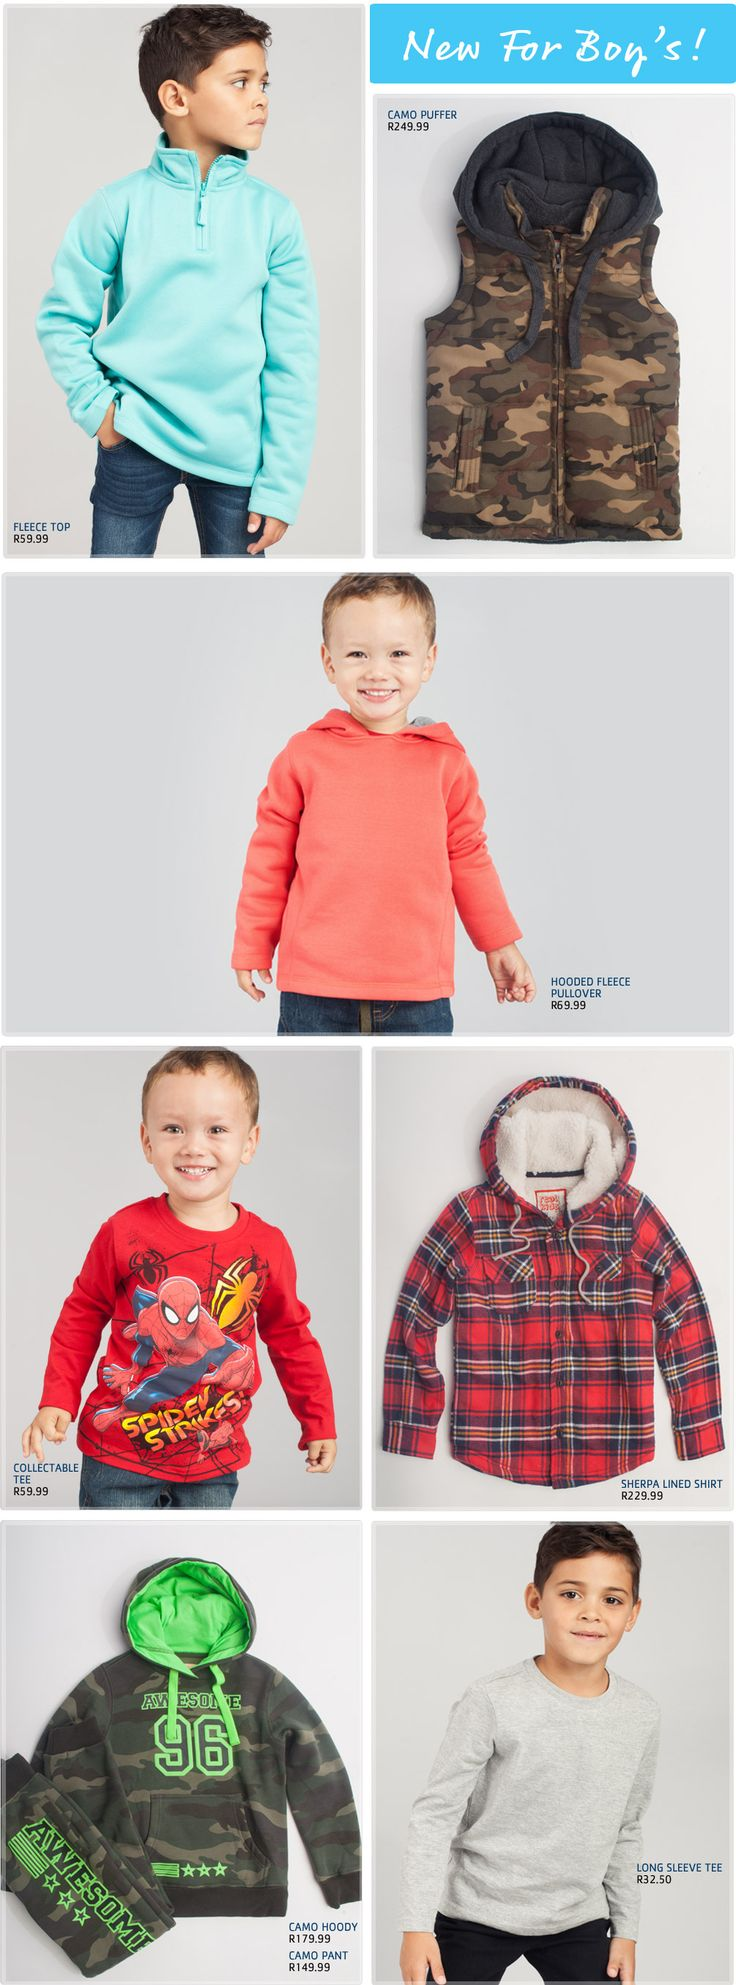 Clothing Boys - Pick n Pay Get him winter ready with this gear, winter jackets are crucial for going outdoors in winter time, and even the last few weeks of autumn, can be equally chilly. Beat the runny noses with our range of jackets and warm winter pants